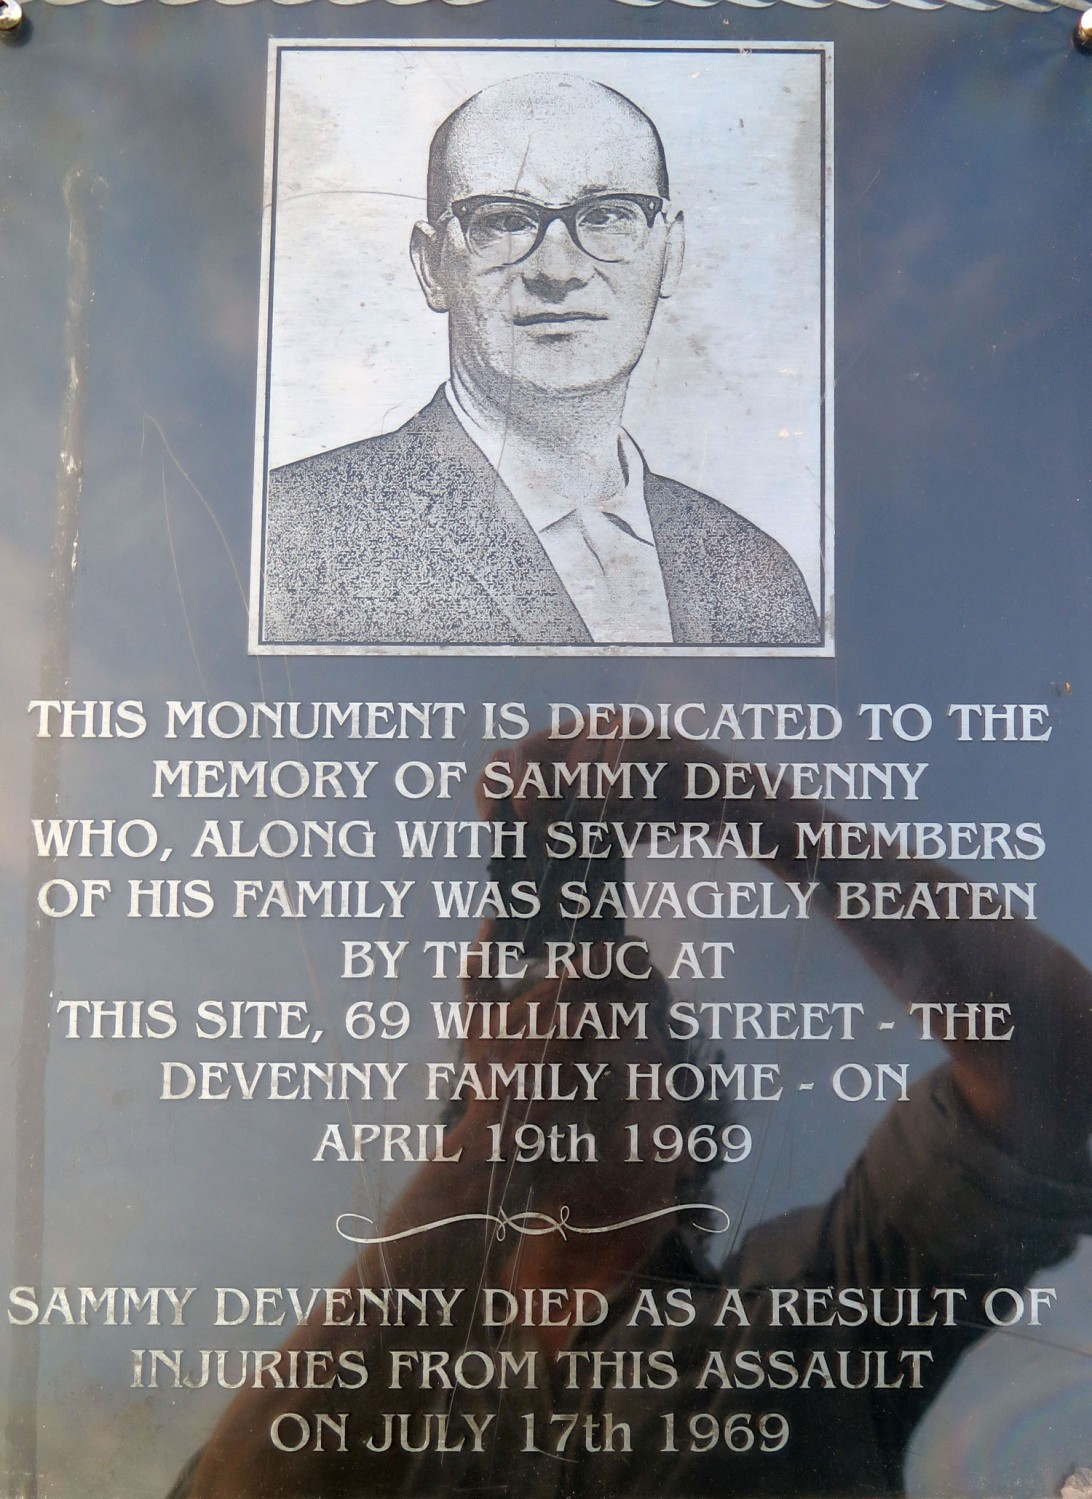 Northern-Ireland-Derry-Londonderry-Sammy-Devenny-Memorial